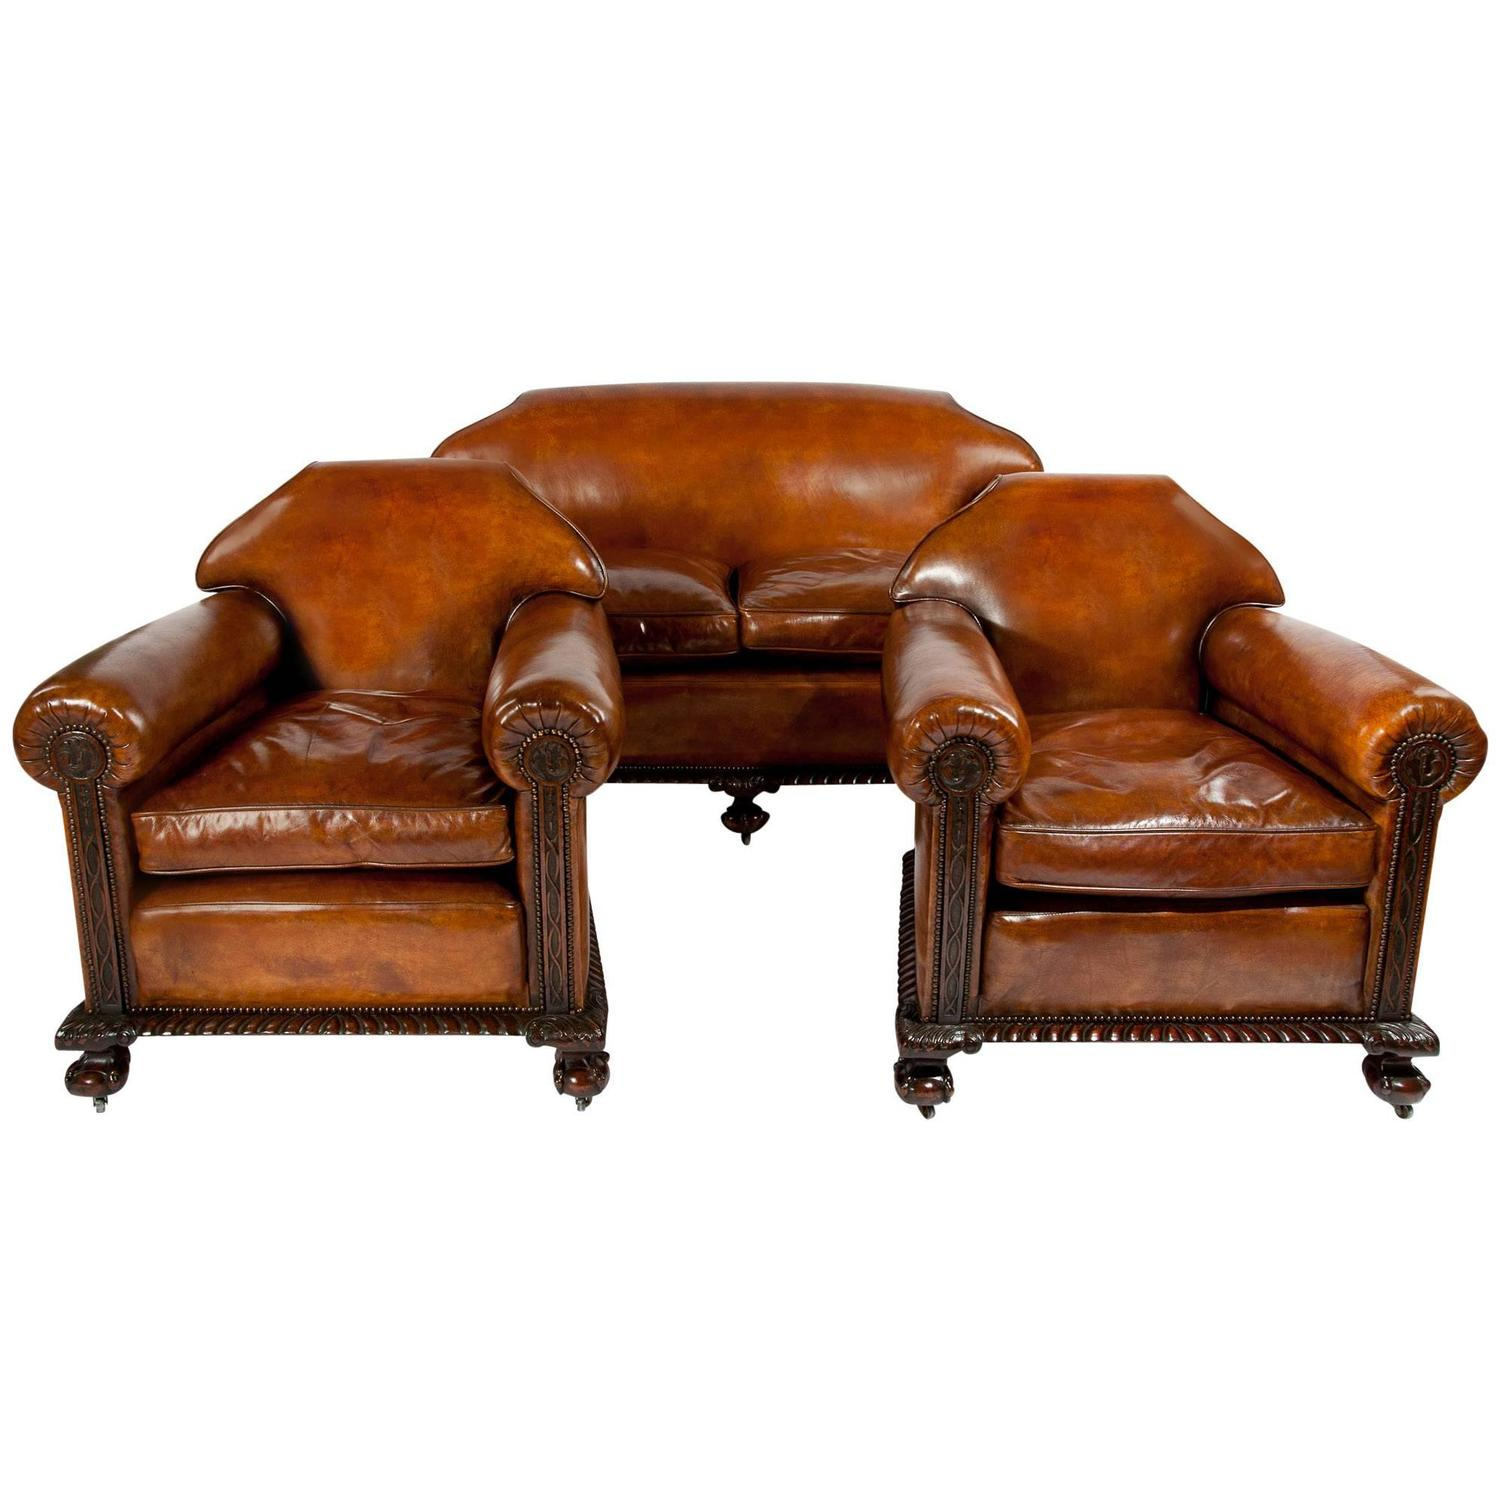 Victorian Leather Living Room Furniture: Magnificent Victorian Leather Sofa And Chairs Three-Piece